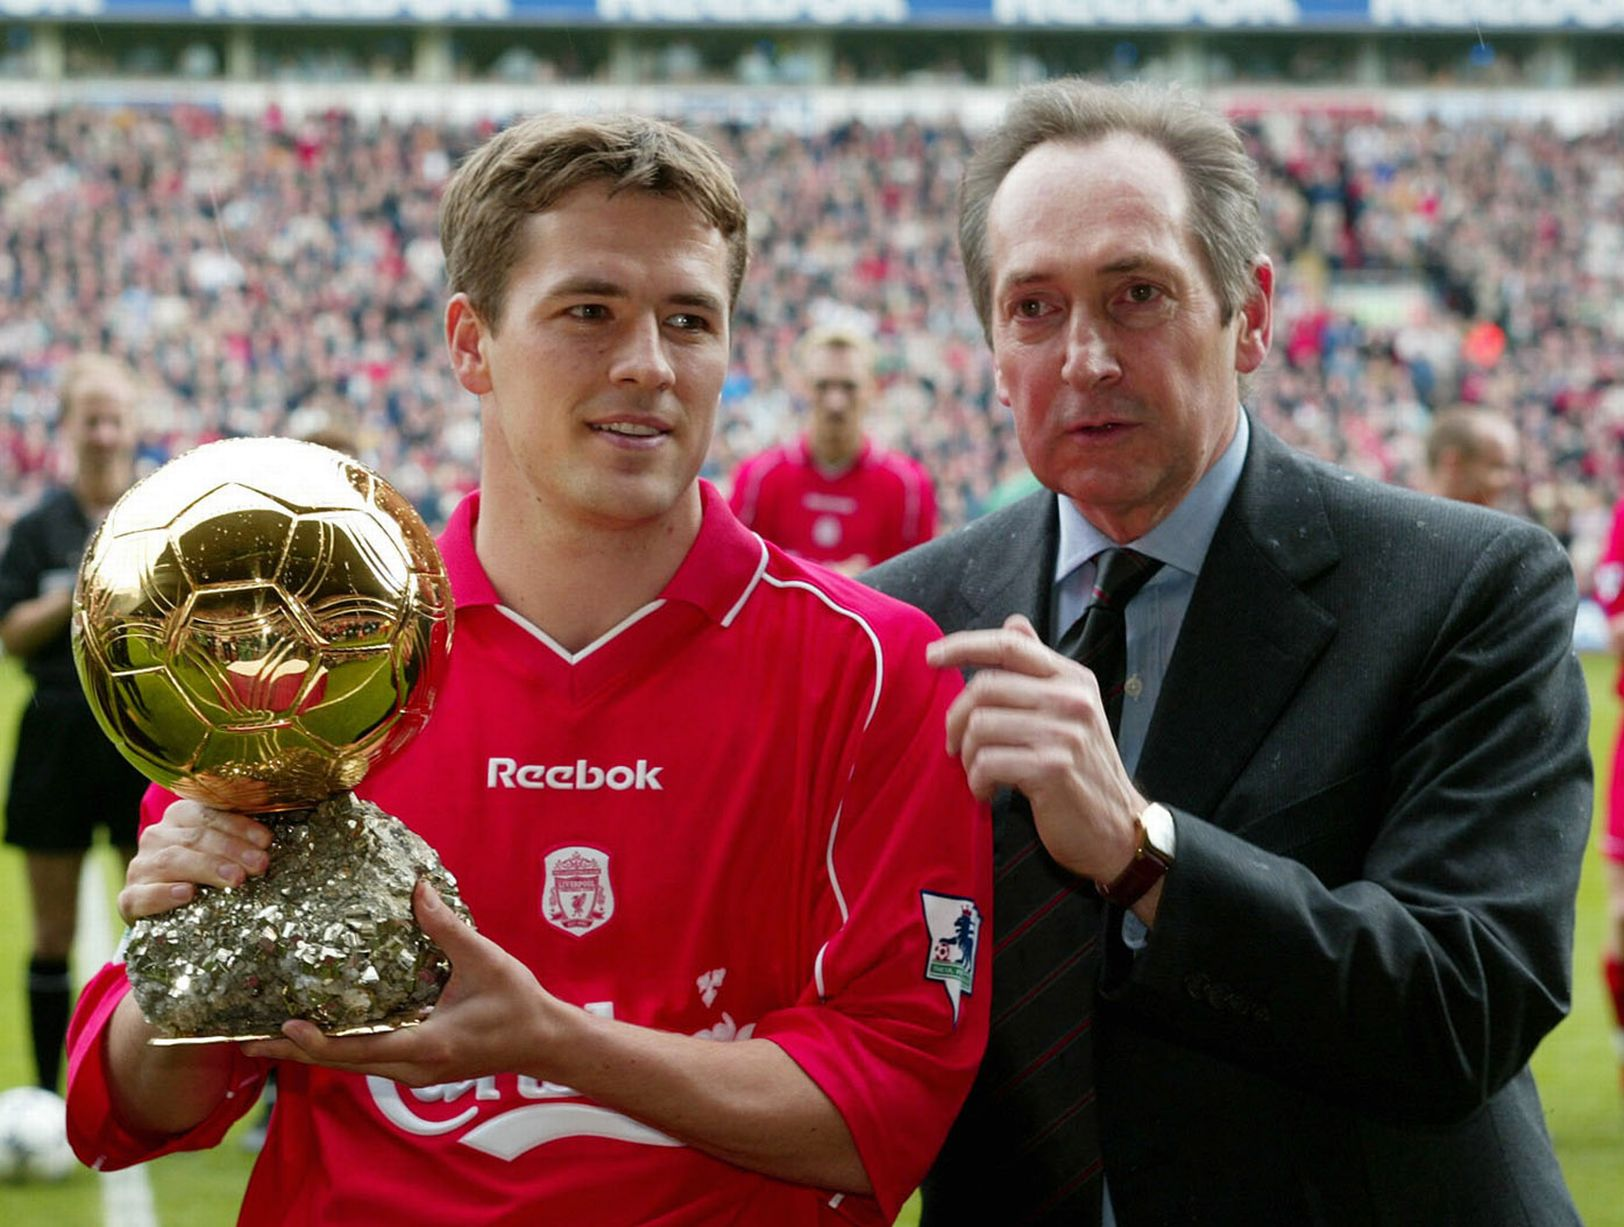 Michael Owen Ballon d'or 2001